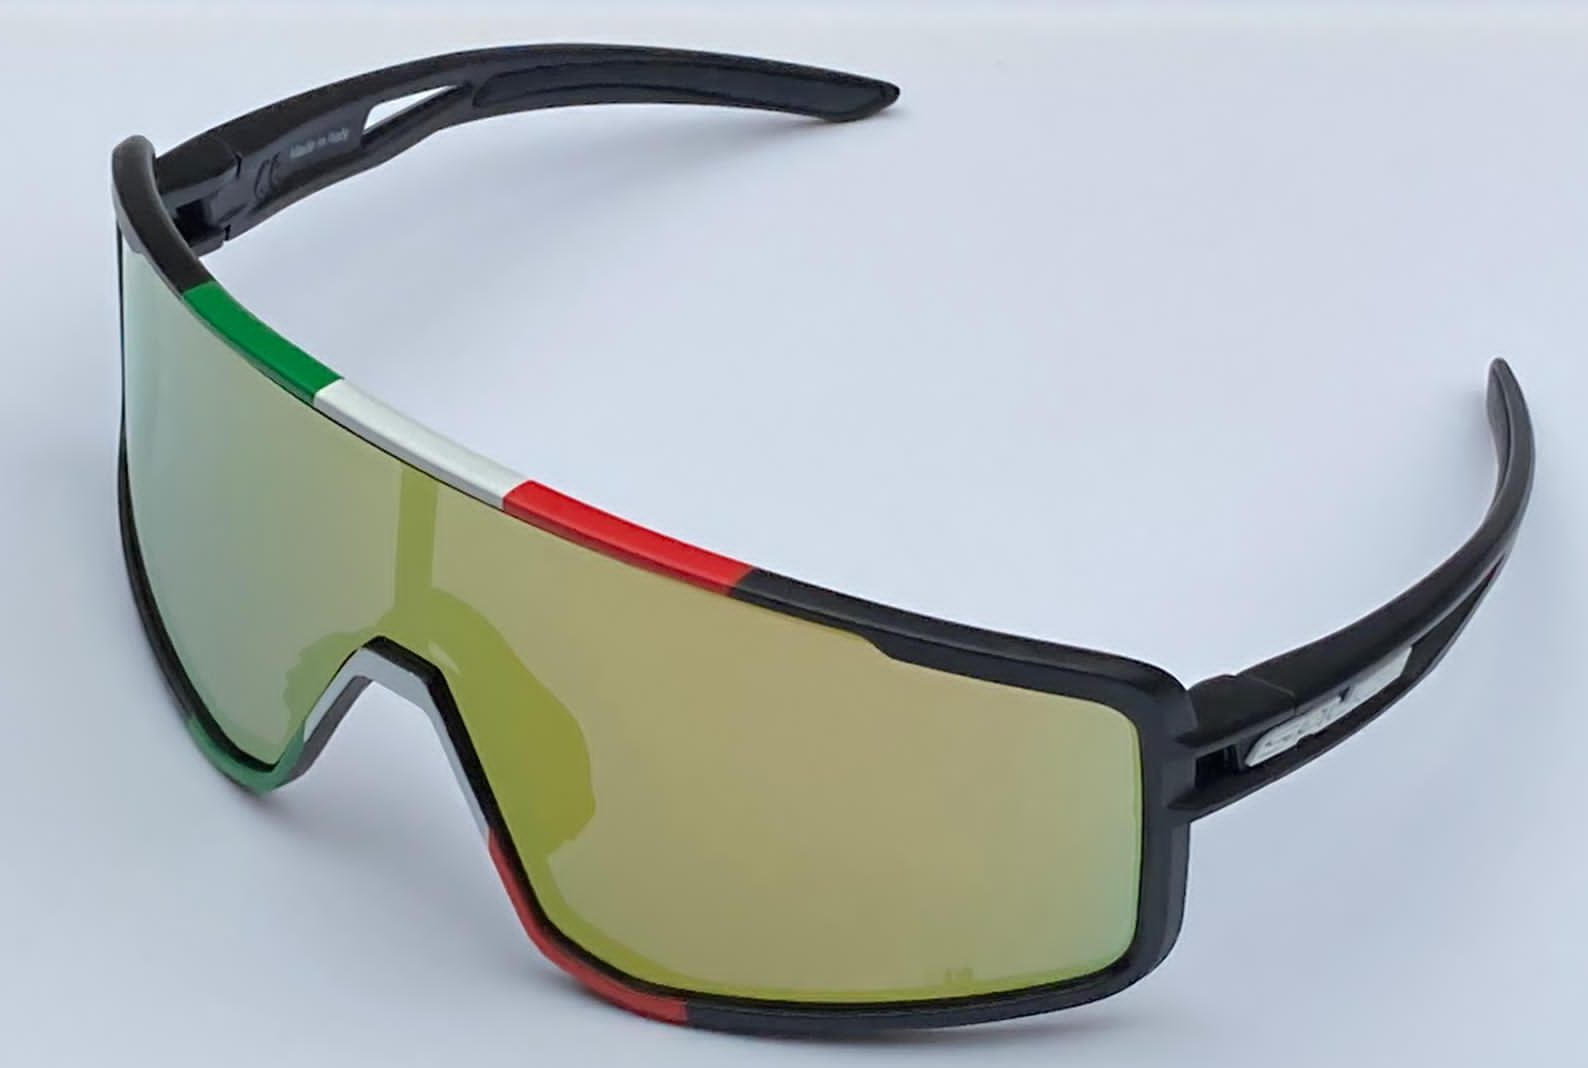 Salice 022 sunglasses review – Cycling Weekly